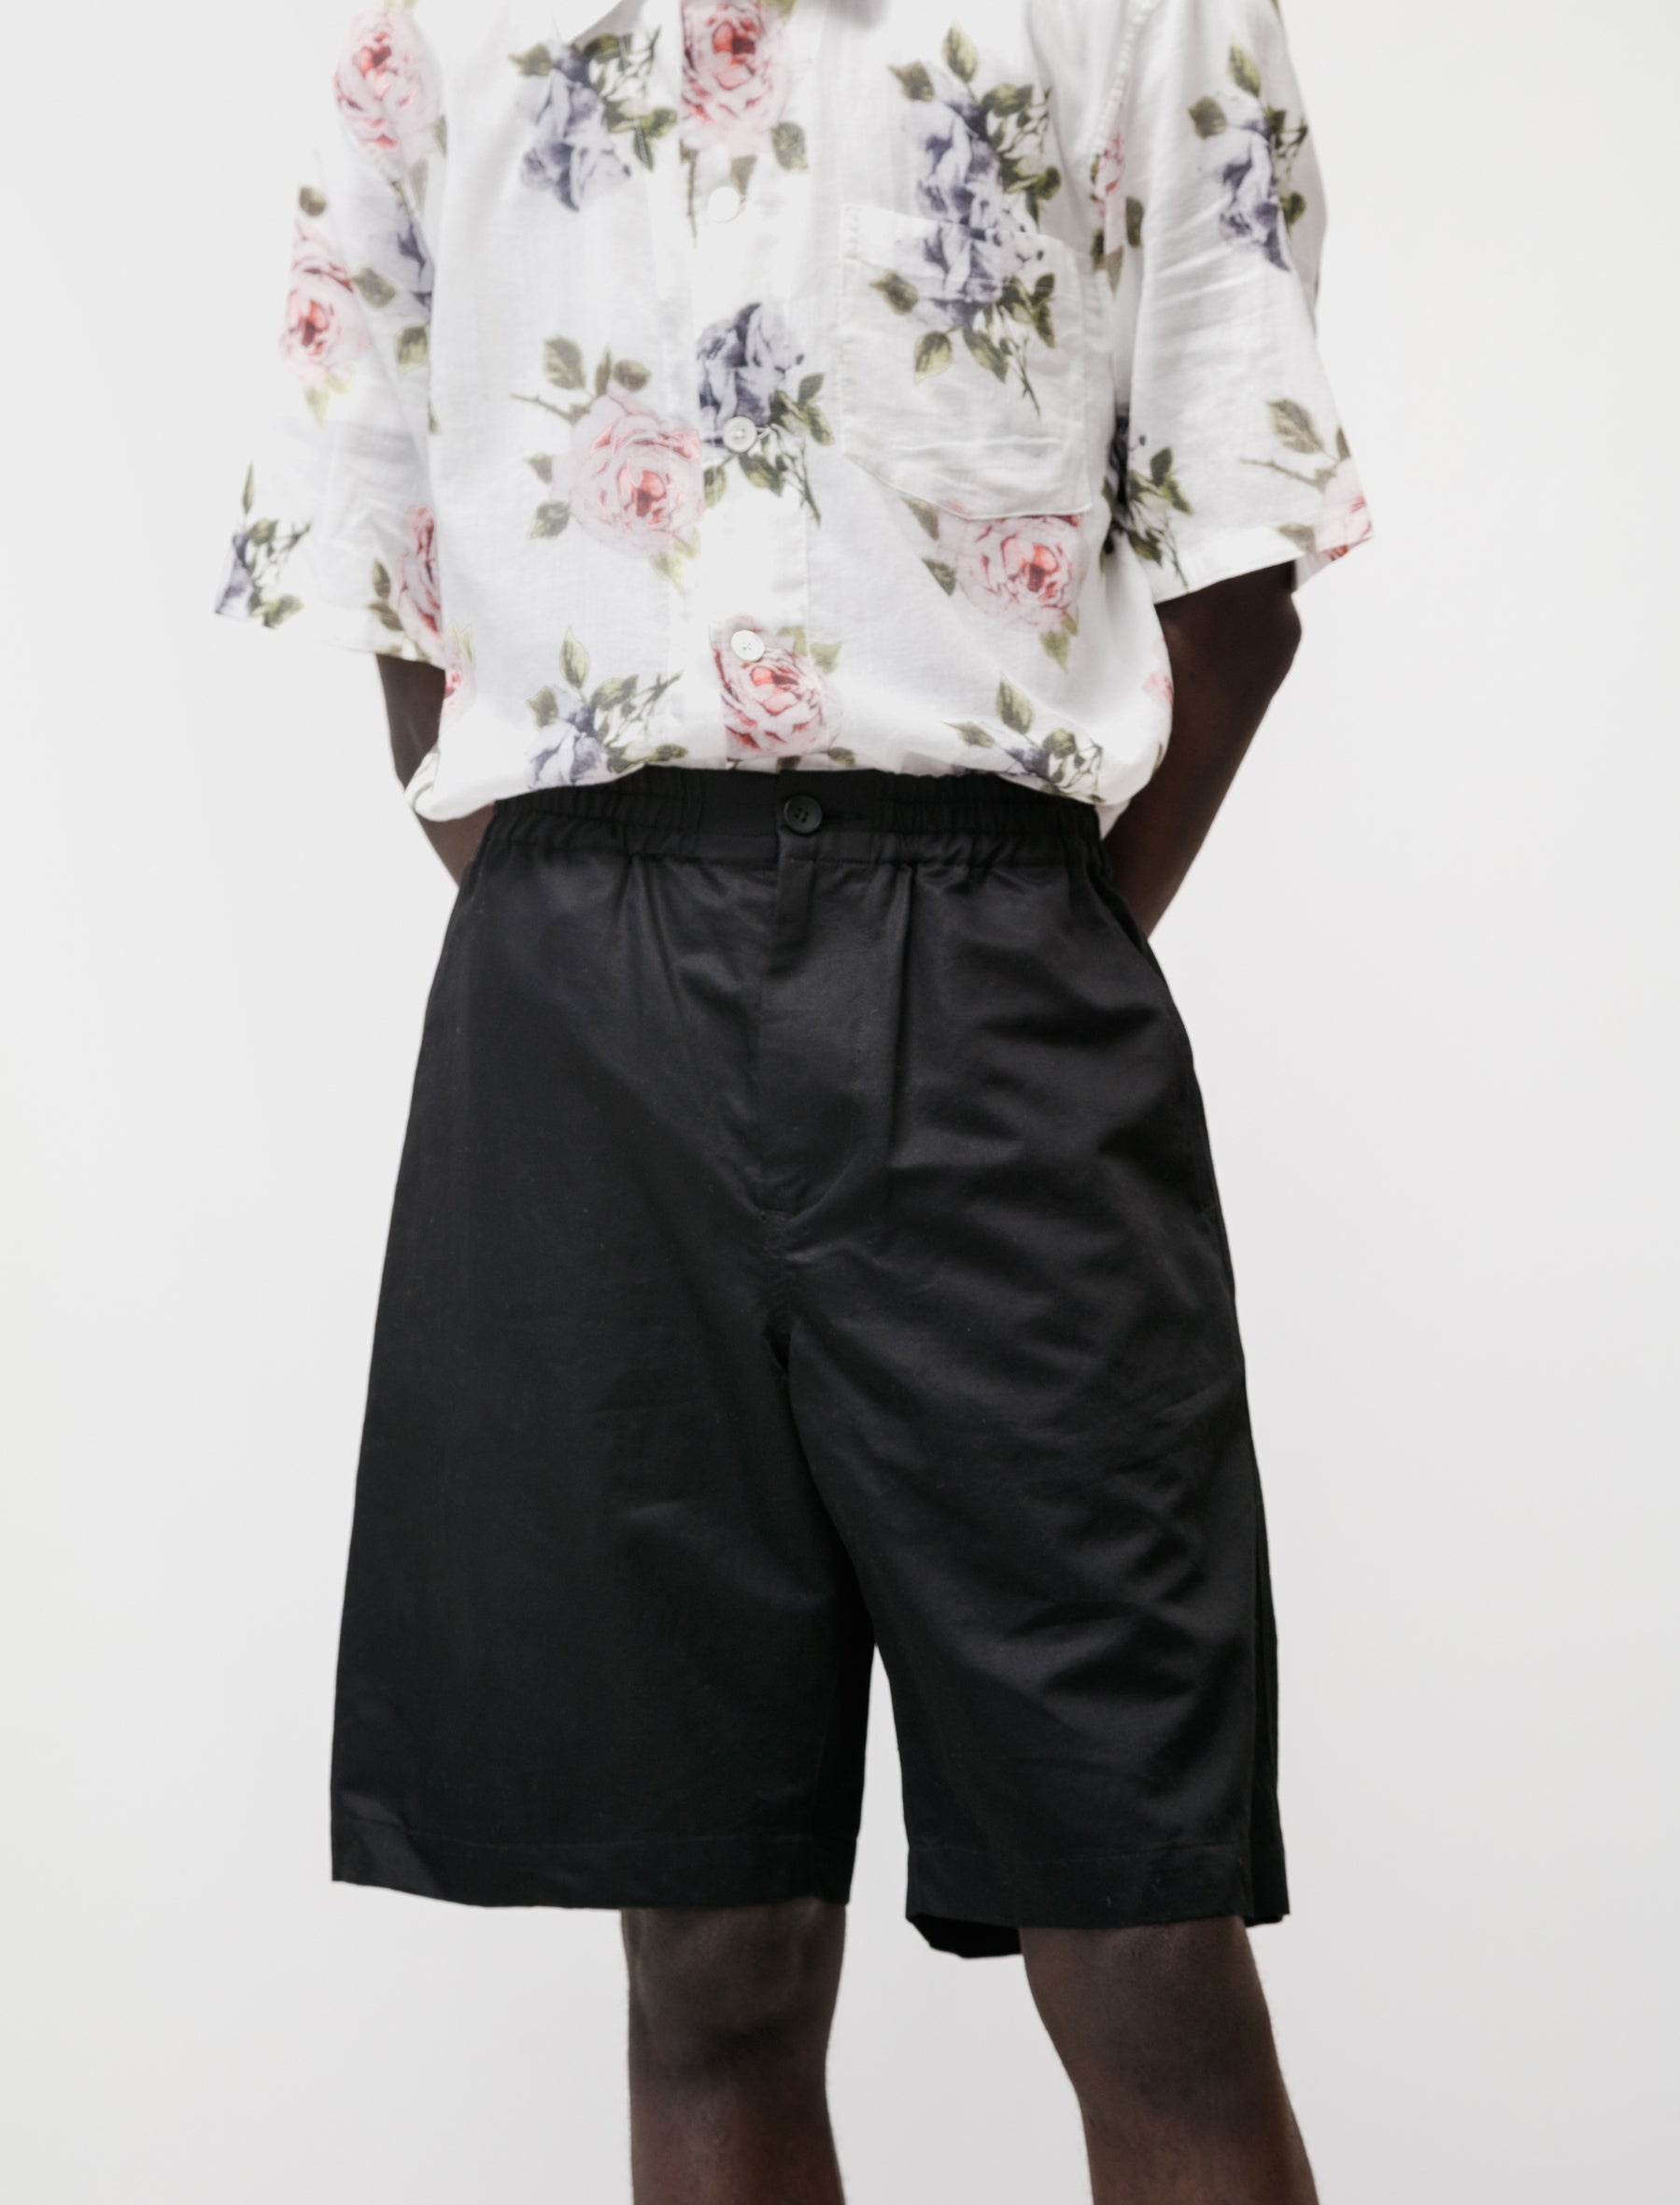 niuhans Relaxed Shorts Cotton Linen Silk Black